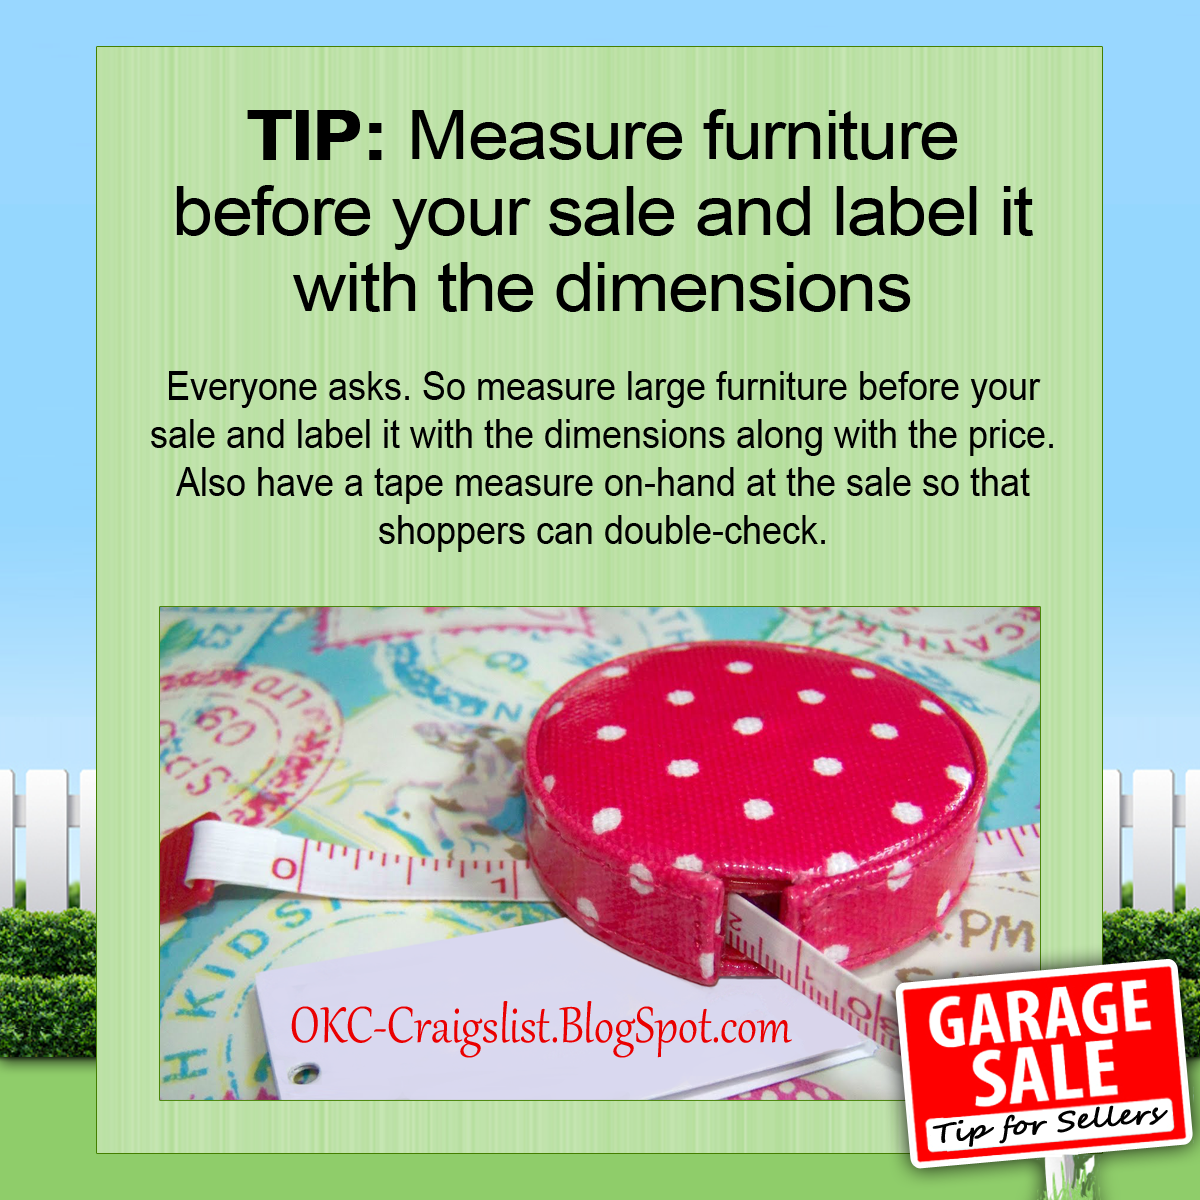 GARAGE SALE TIP: Measure and label furniture before your garage sale